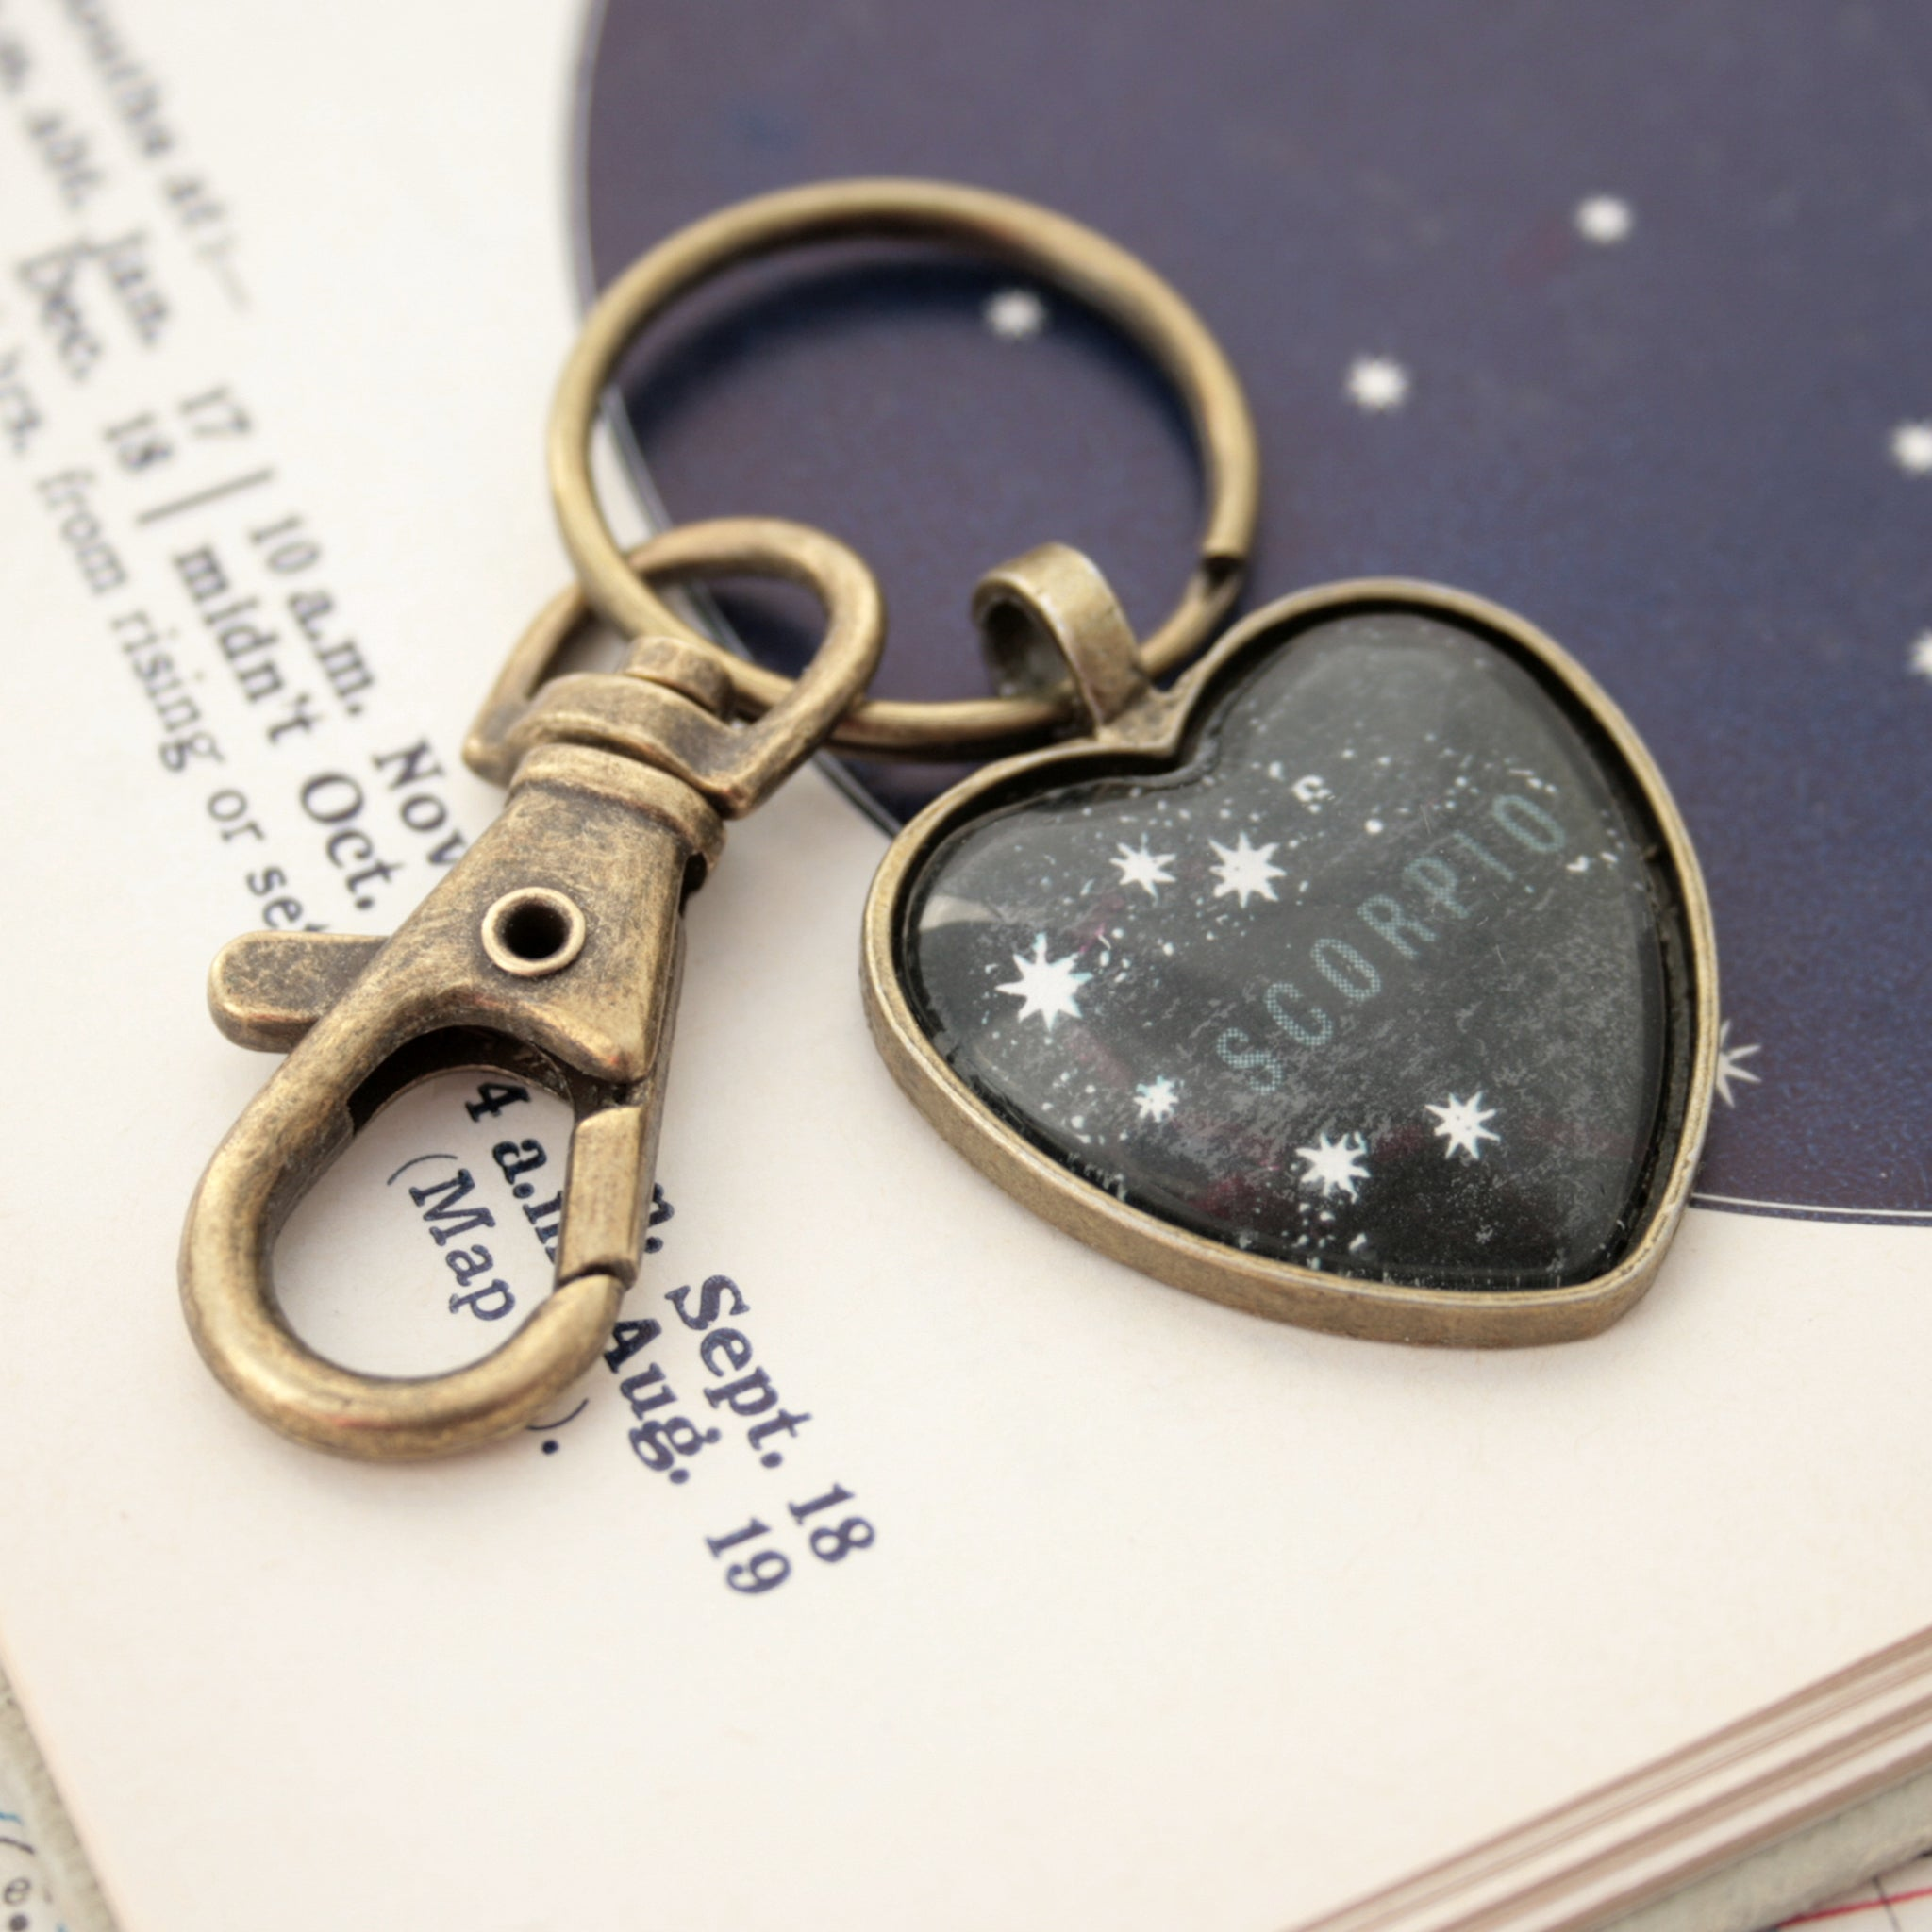 Heart shaped keychain featuring scorpio zodiac on black map